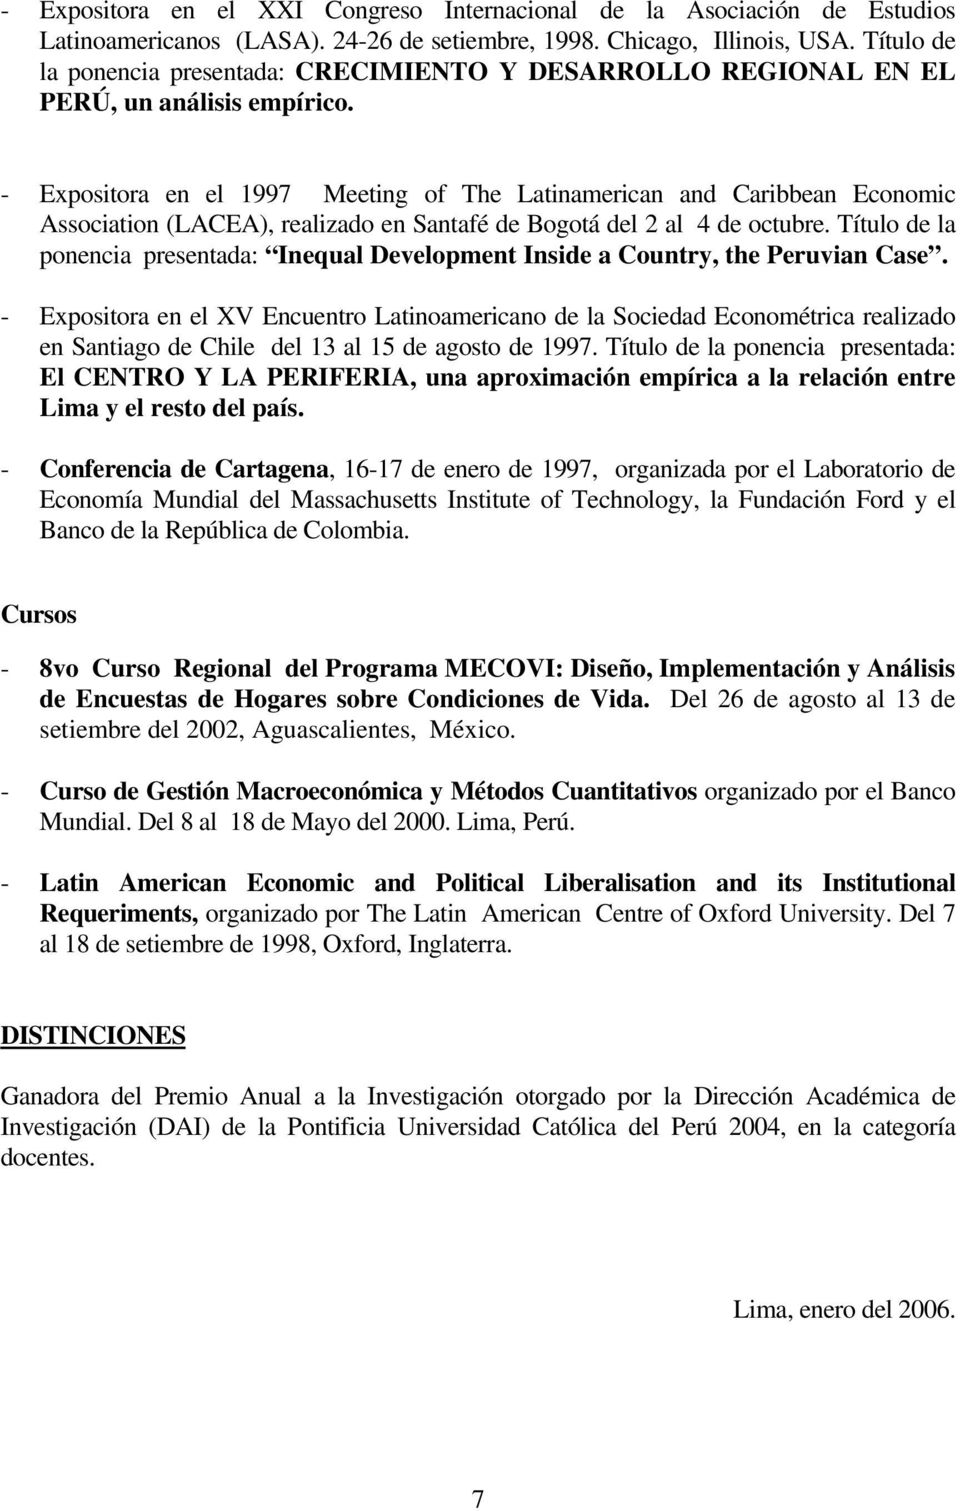 - Expositora en el 1997 Meeting of The Latinamerican and Caribbean Economic Association (LACEA), realizado en Santafé de Bogotá del 2 al 4 de octubre.